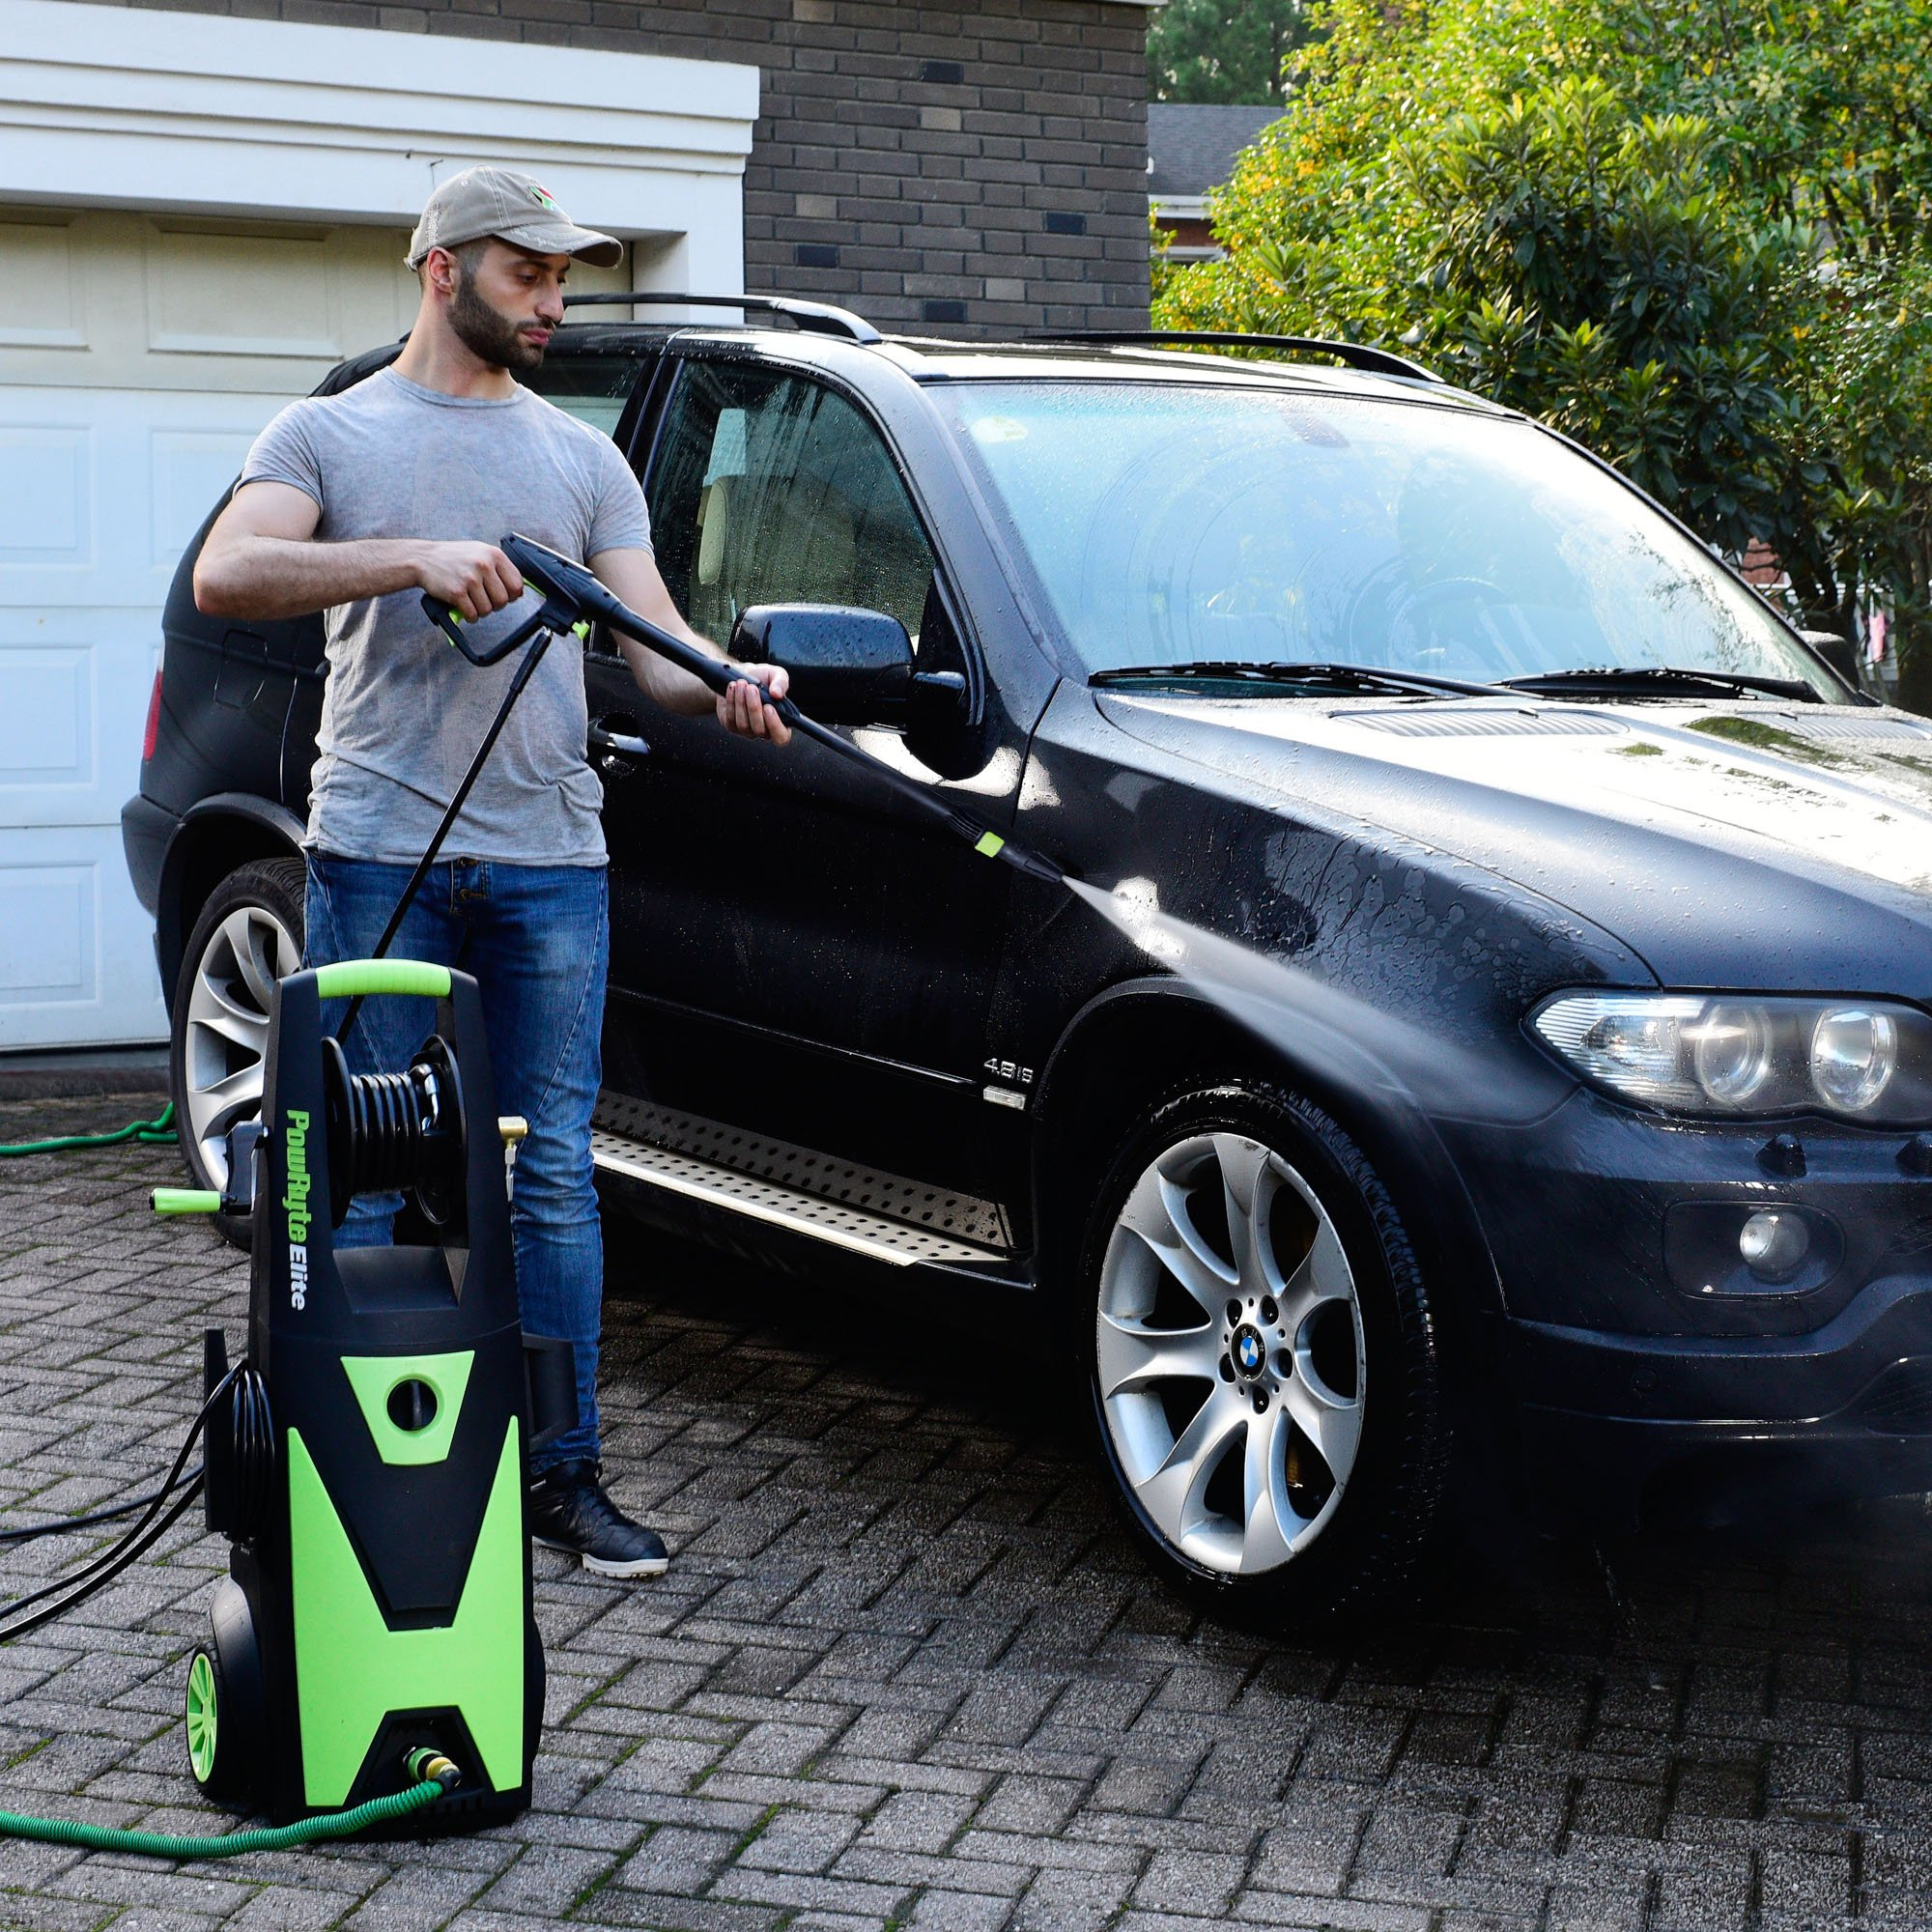 PowRyte Elite Electric Pressure Washer, 2200PSI 2.0GPM Power Washer with Hose Reel, Extra Turbo Nozzle, Induction Motor by PowRyte (Image #2)